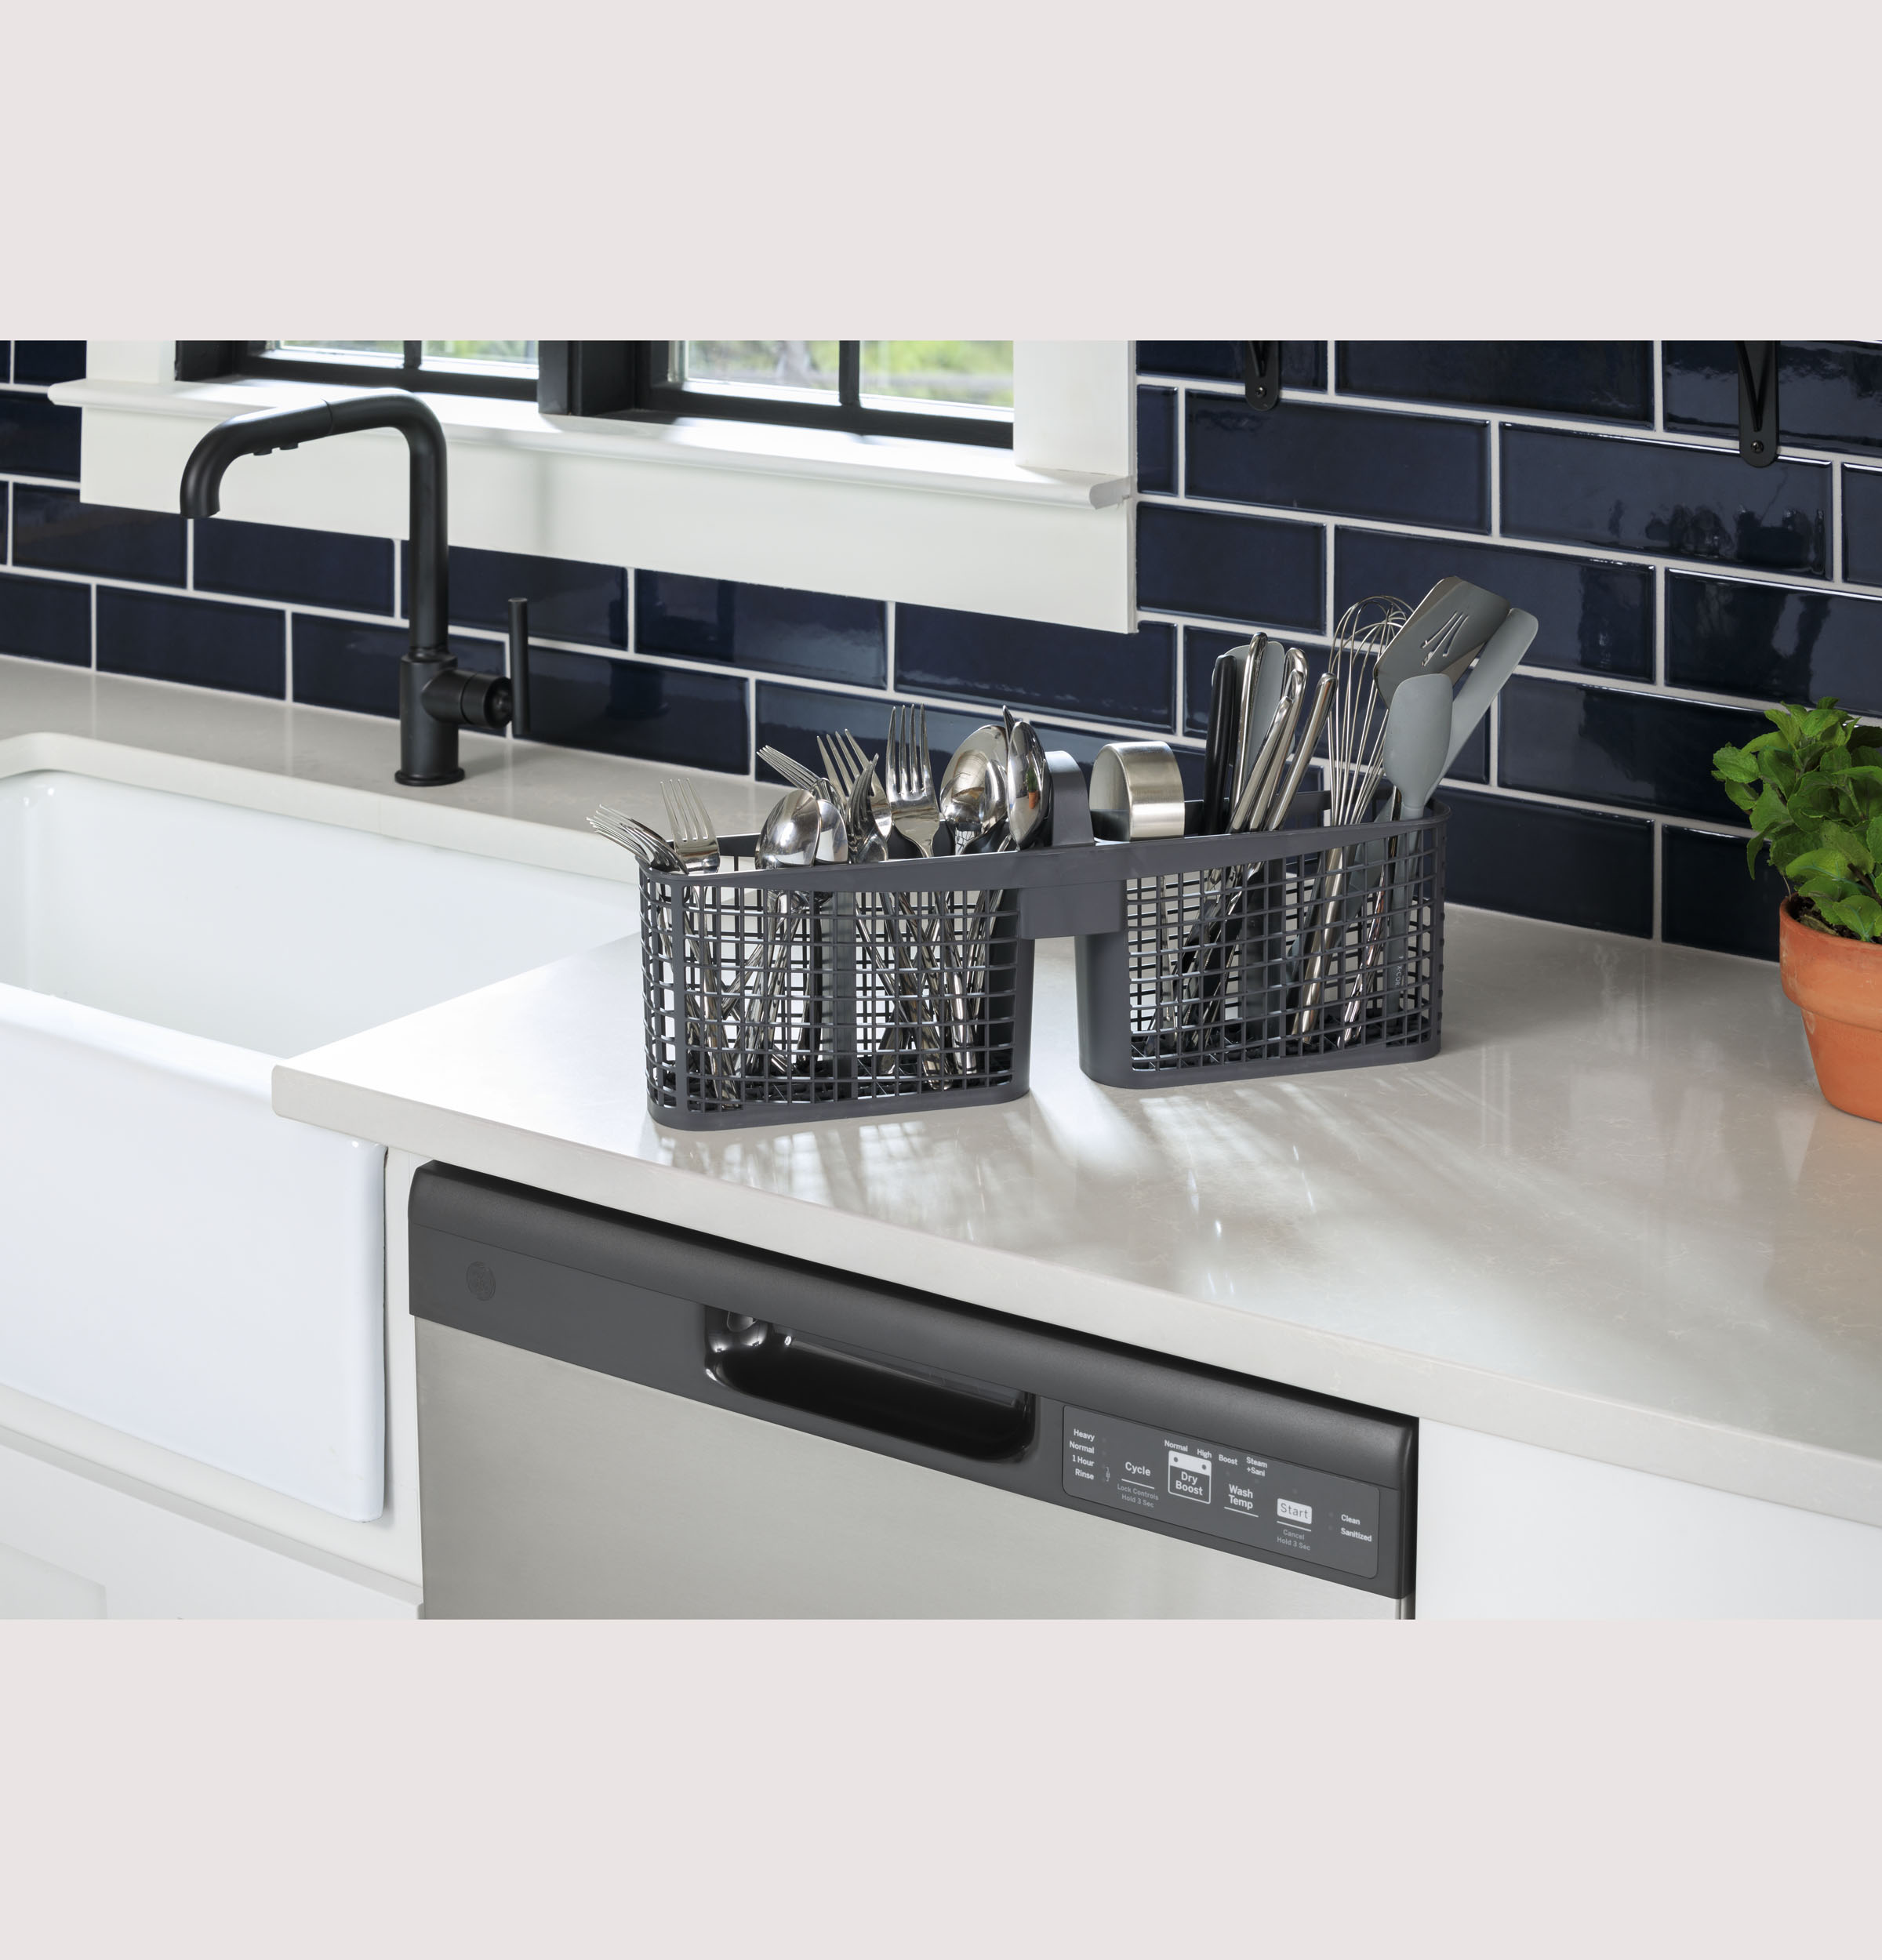 Model: GDF450PGRBB | GE GE® Dishwasher with Front Controls